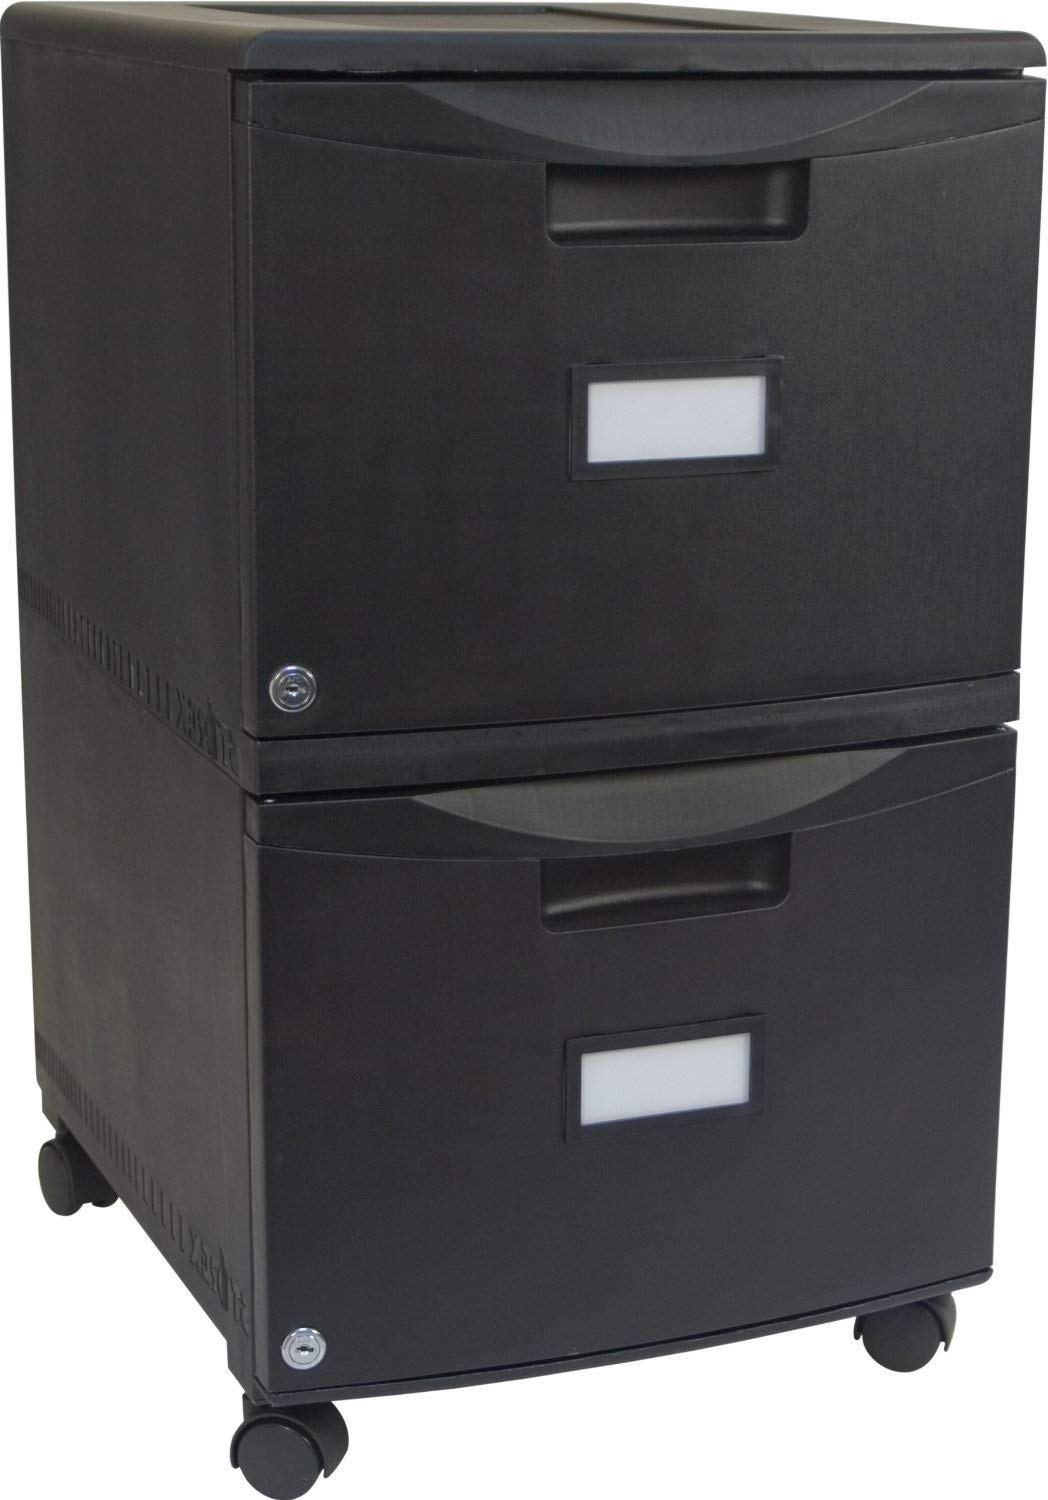 DK Furniture 2-Drawer Mobile File Cabinet with Lock, 18.25 x 14.75 x 26 Inches, Legal/Letter, All Black